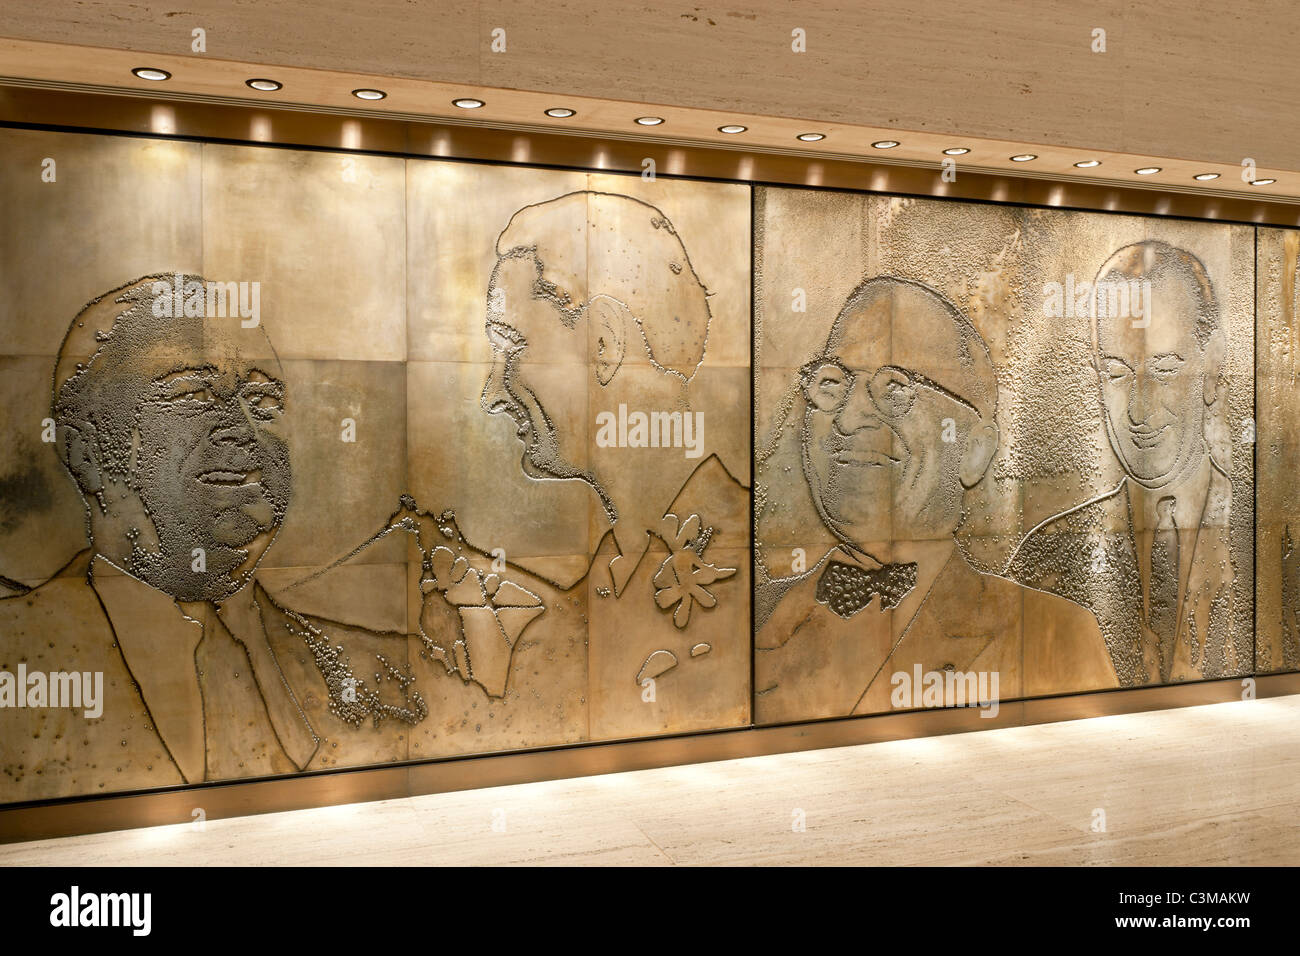 Etched Magnesium plates, The Great Hall, LBJ  Presidential Library - Stock Image